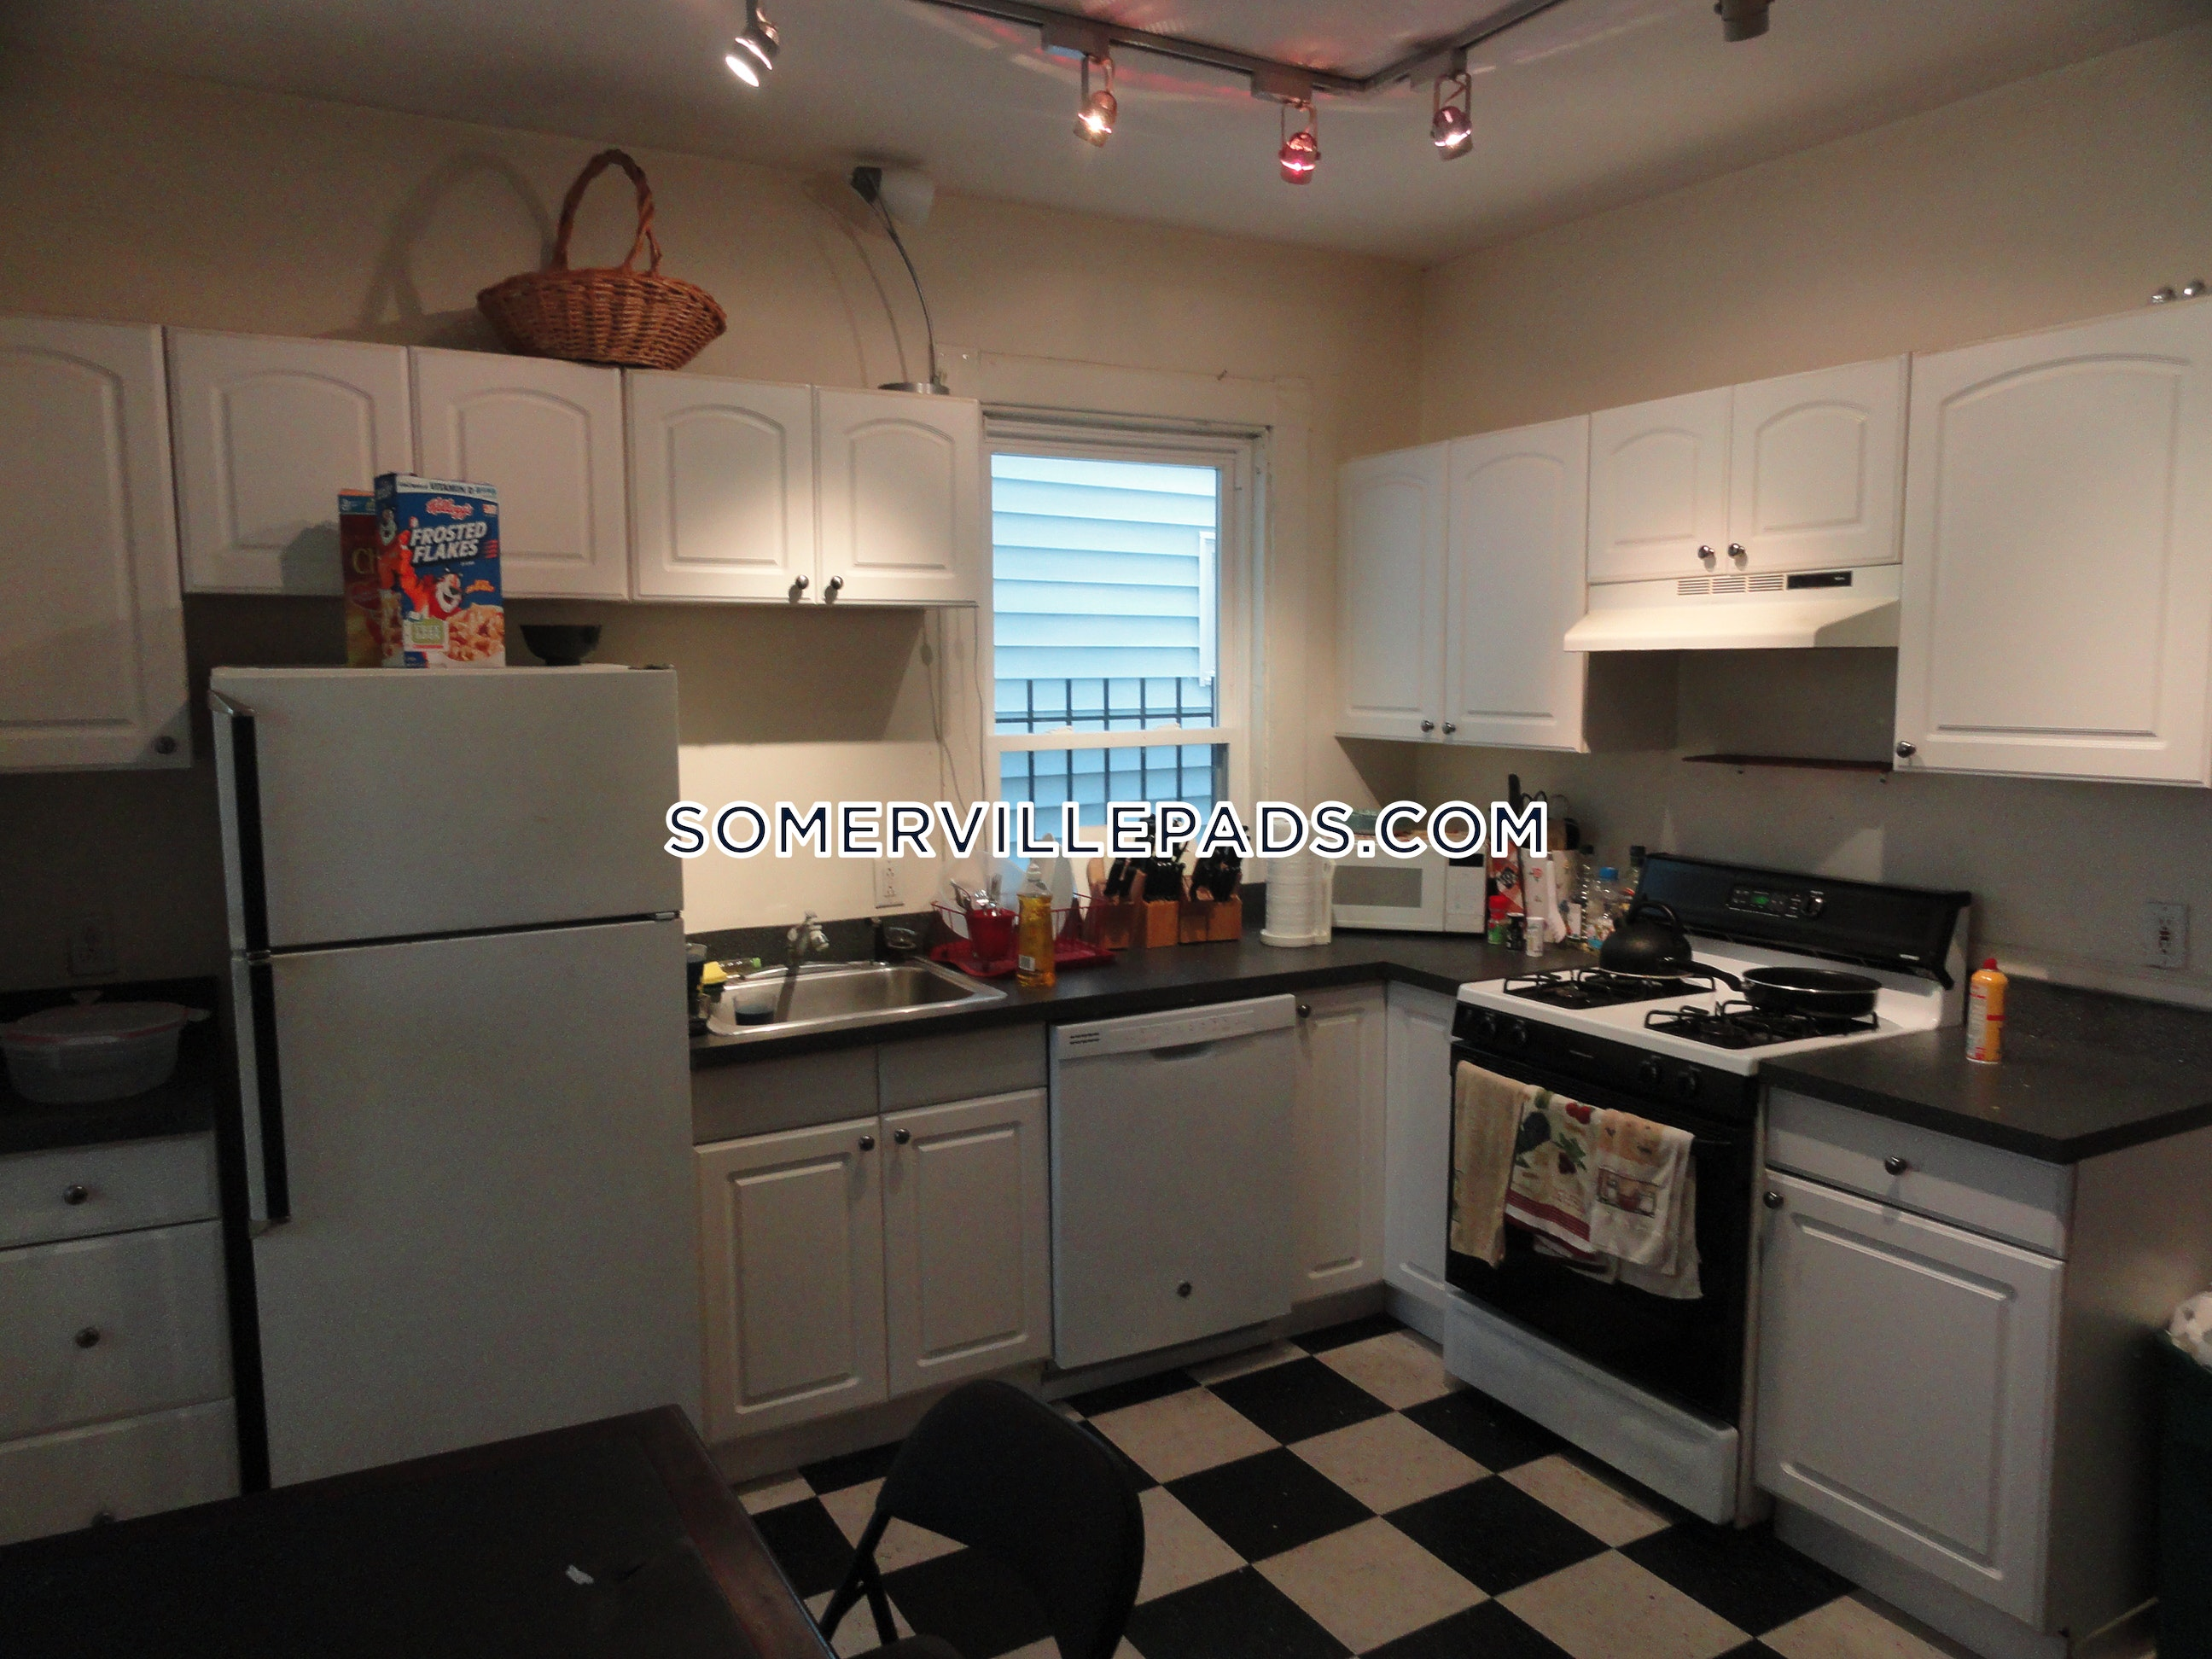 3-beds-1-bath-somerville-dali-inman-squares-3275-440414